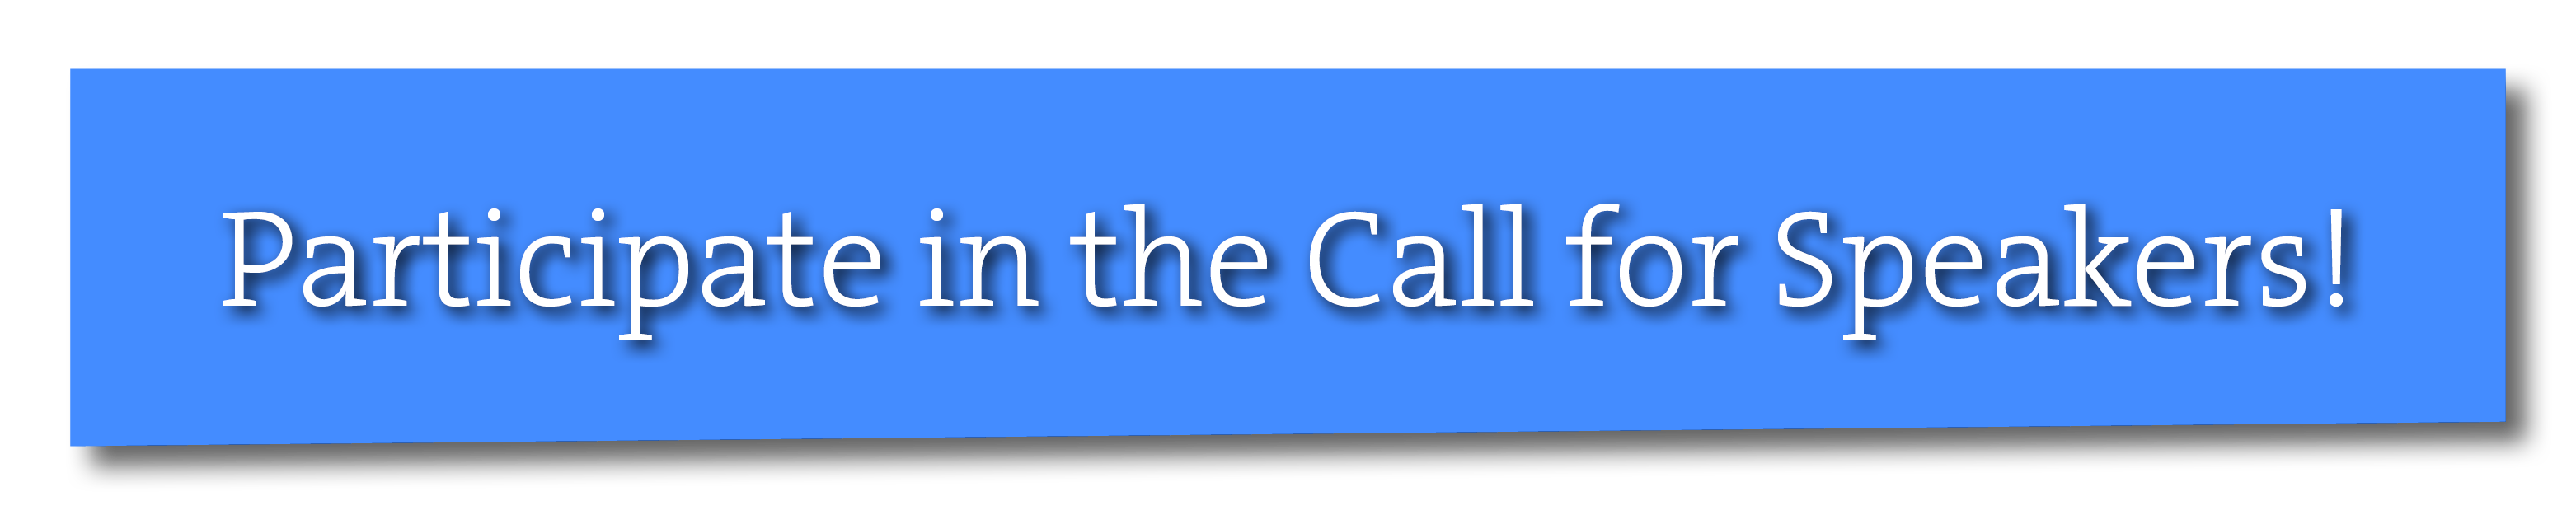 Participate in the Call for Speakers